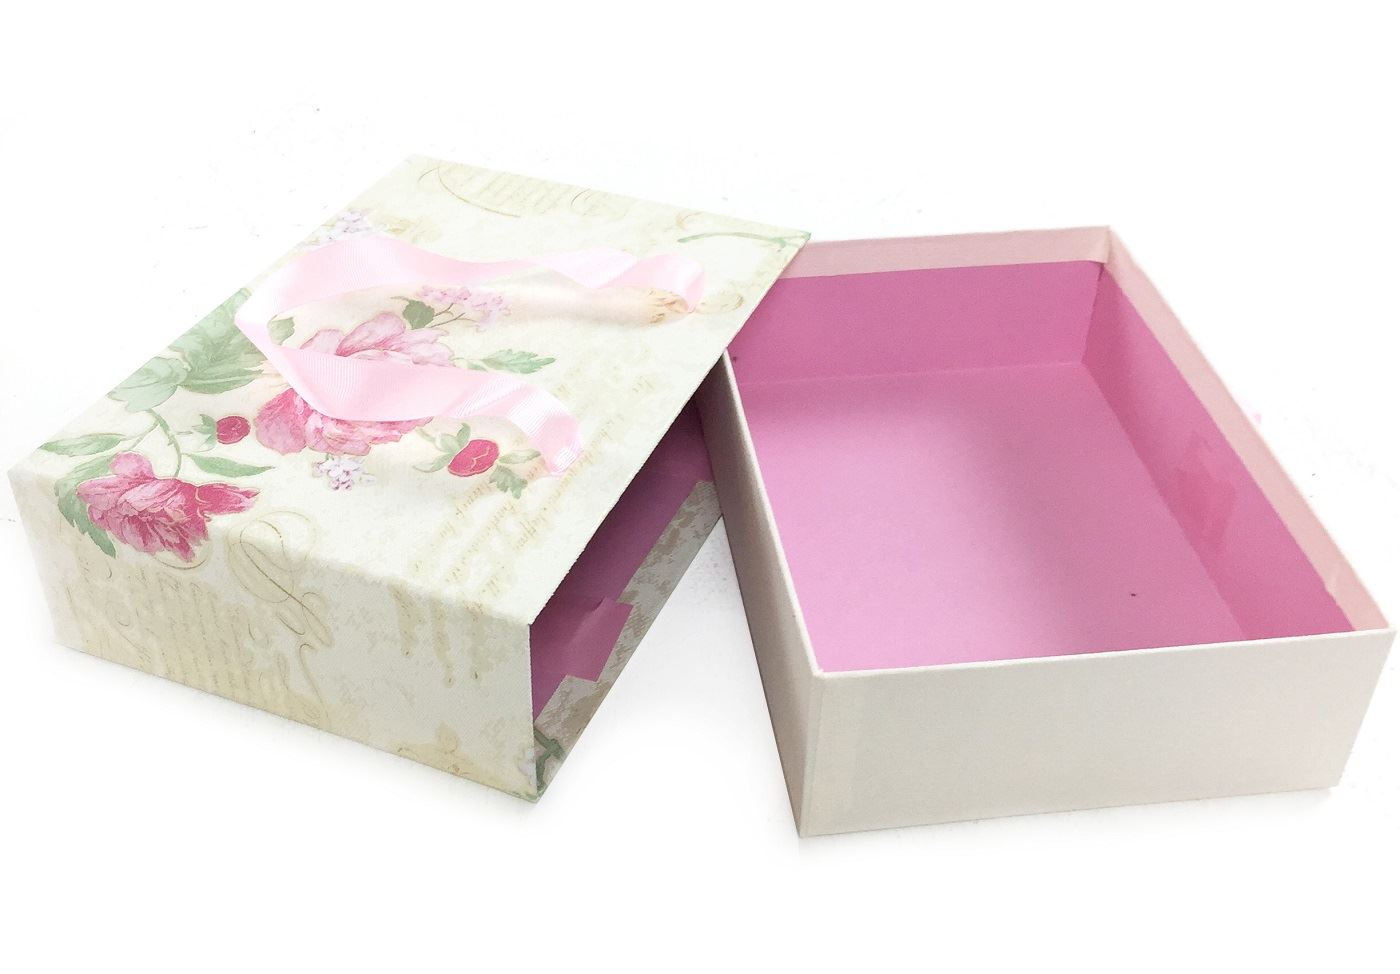 Decorative Cardboard Boxes For Gifts : Decorative yellow hard cardboard storage xmas birthday